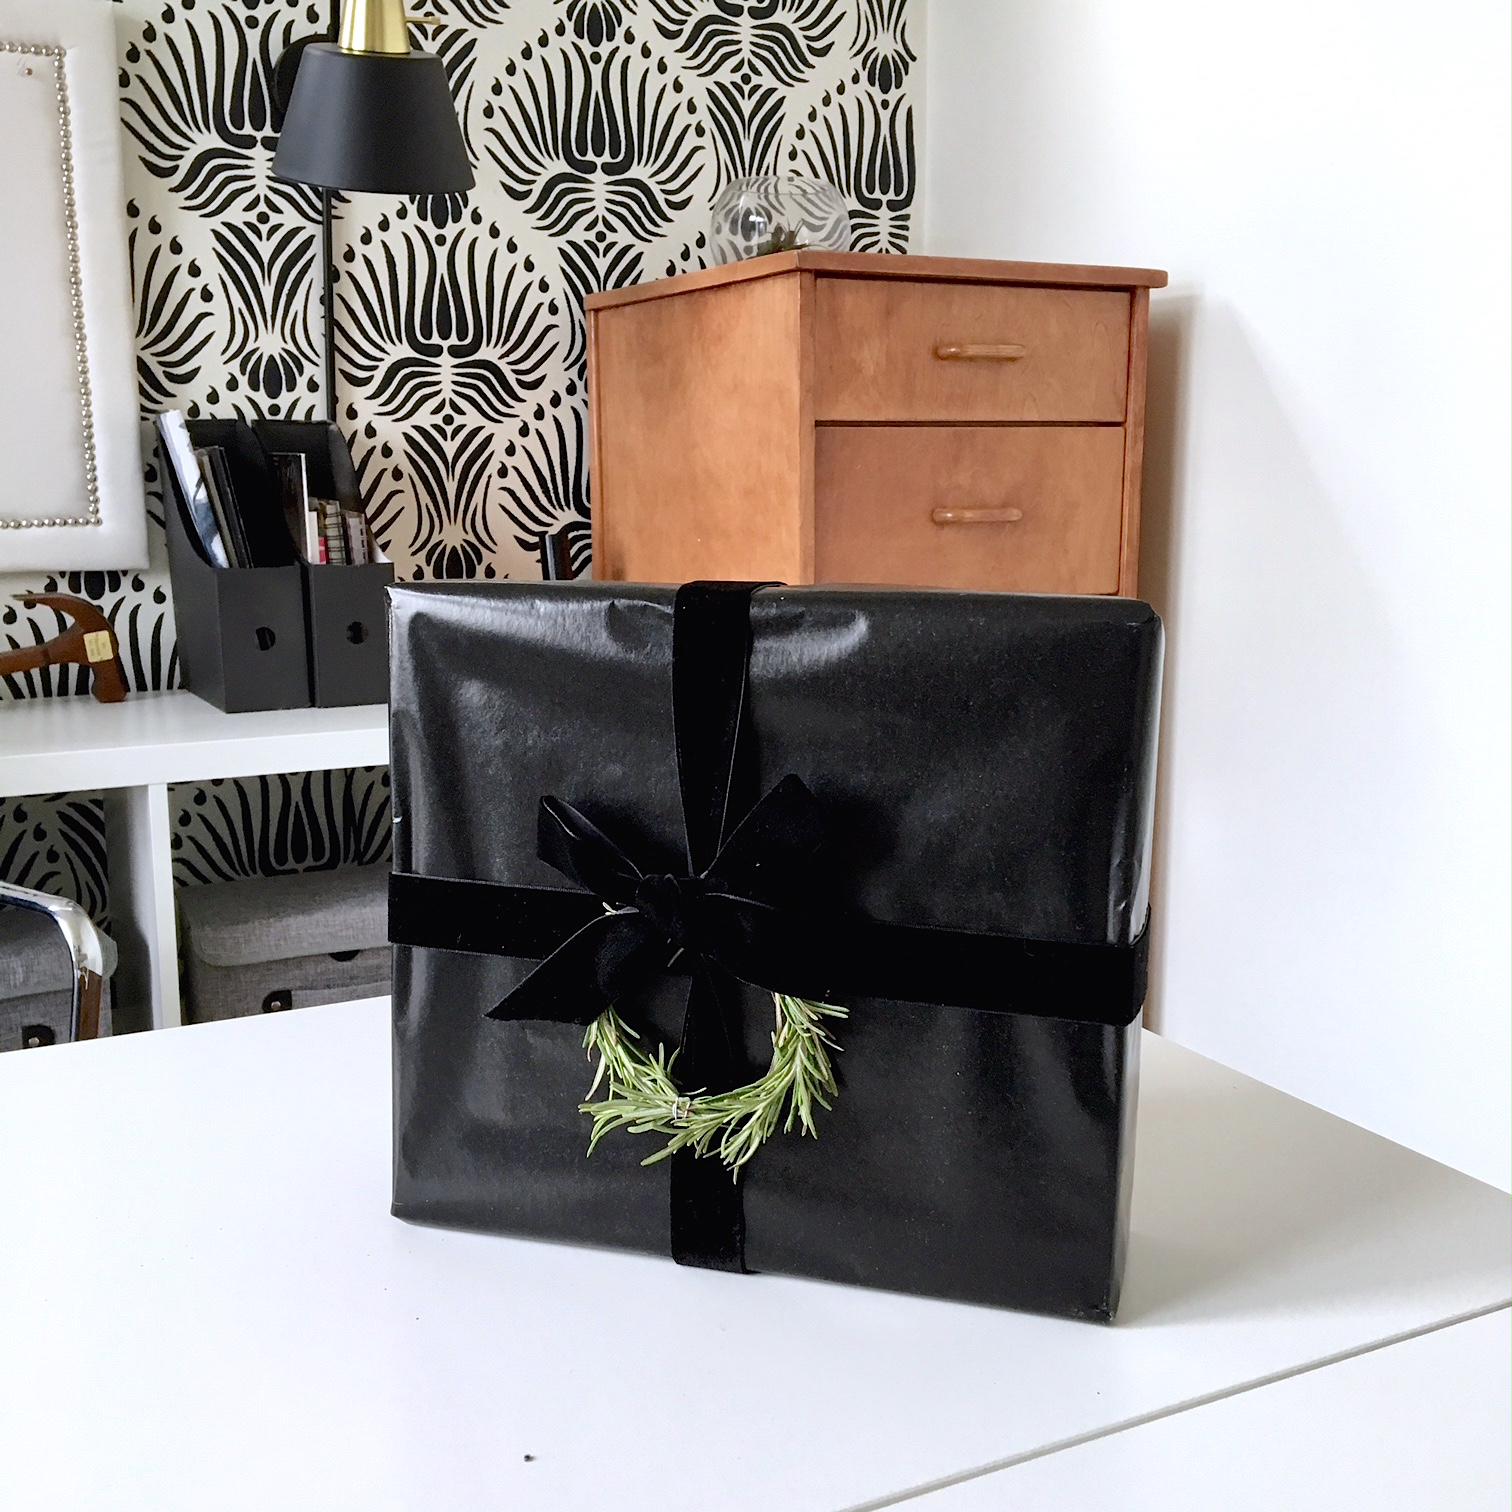 Home Design Gift Ideas: Gift Wrapping Ideas For Christmas: Black Paper